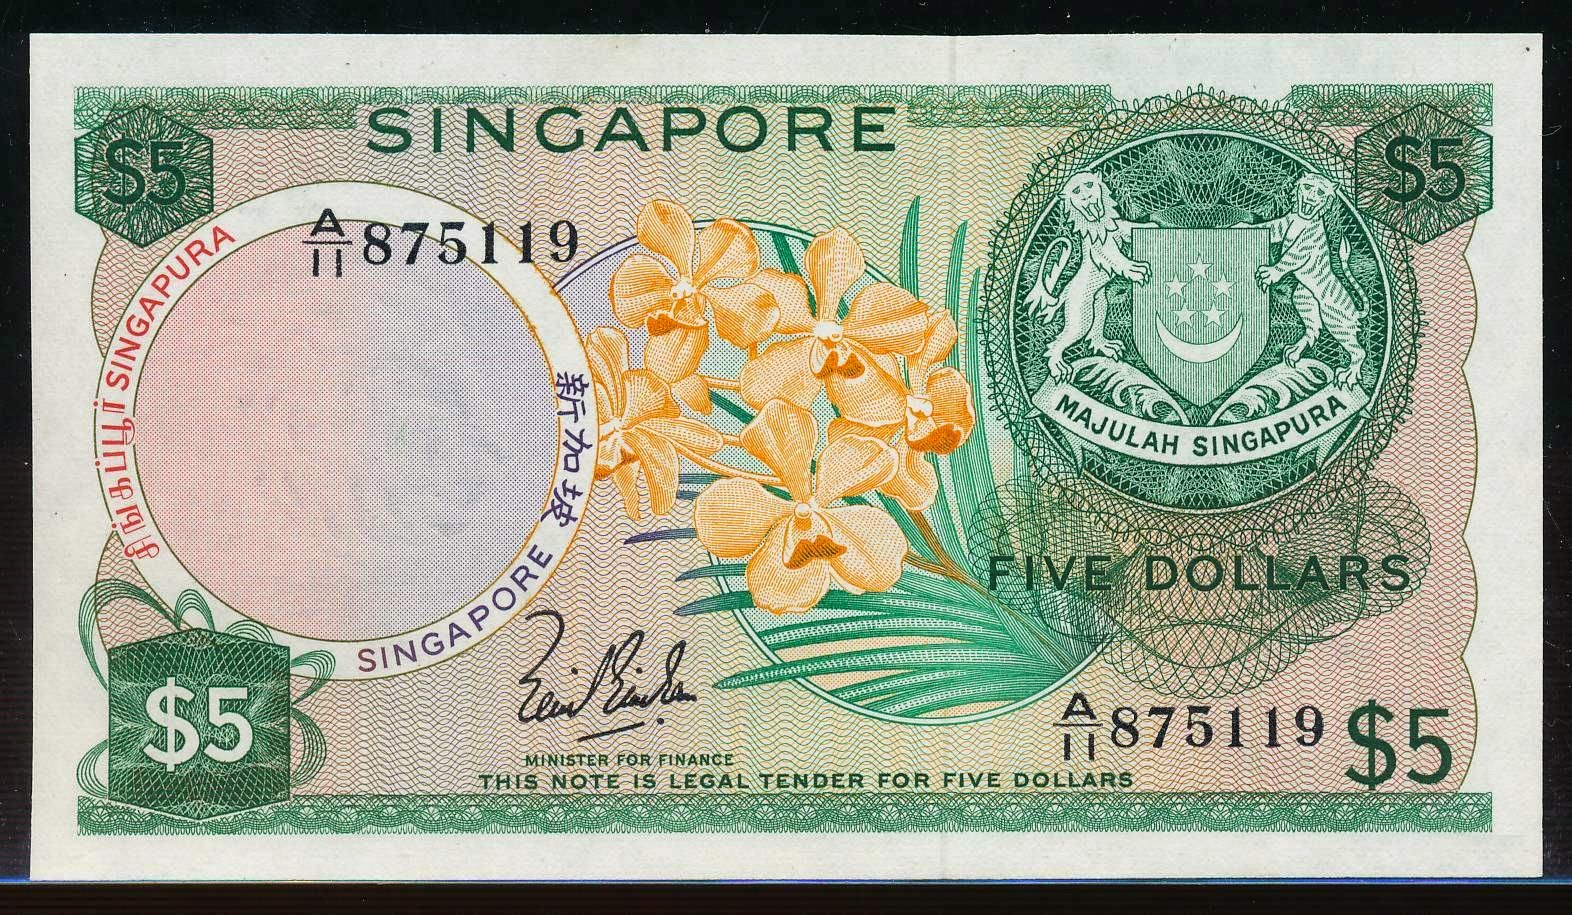 Singapore 5 Dollars banknote Orchid series currency notes